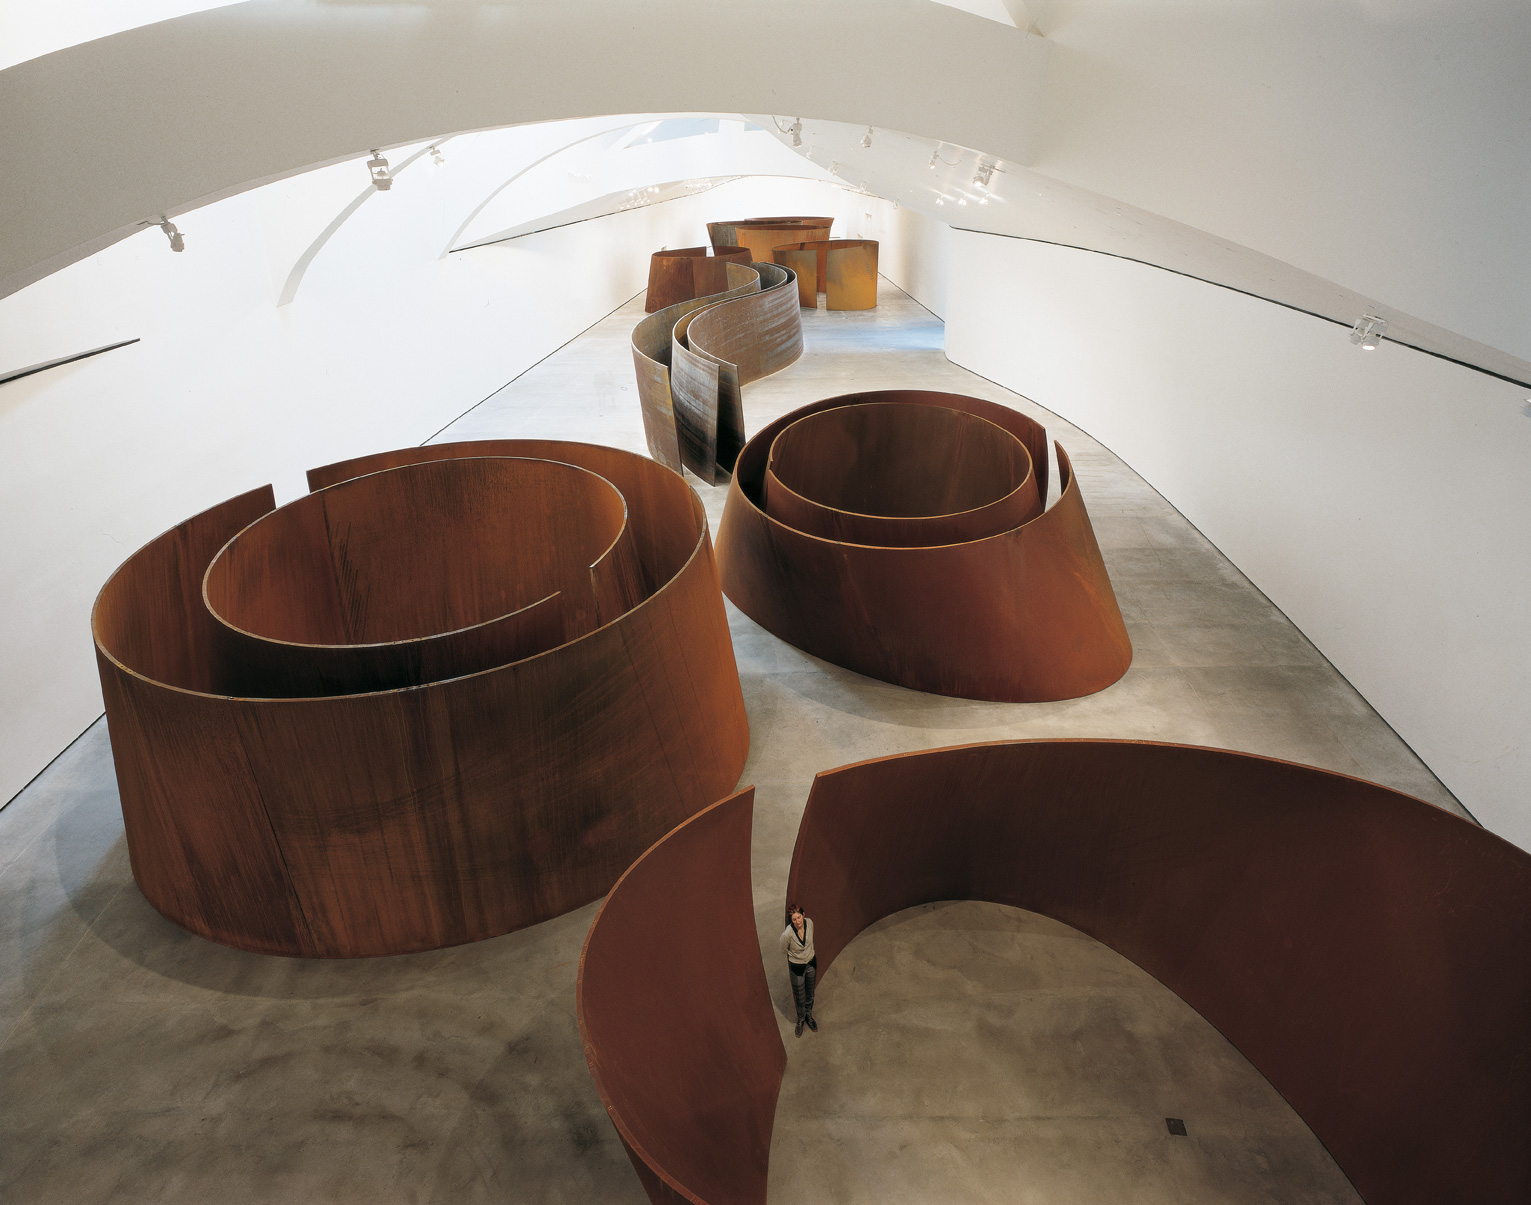 1999-Richard-Serra-Obra-reciente.jpg